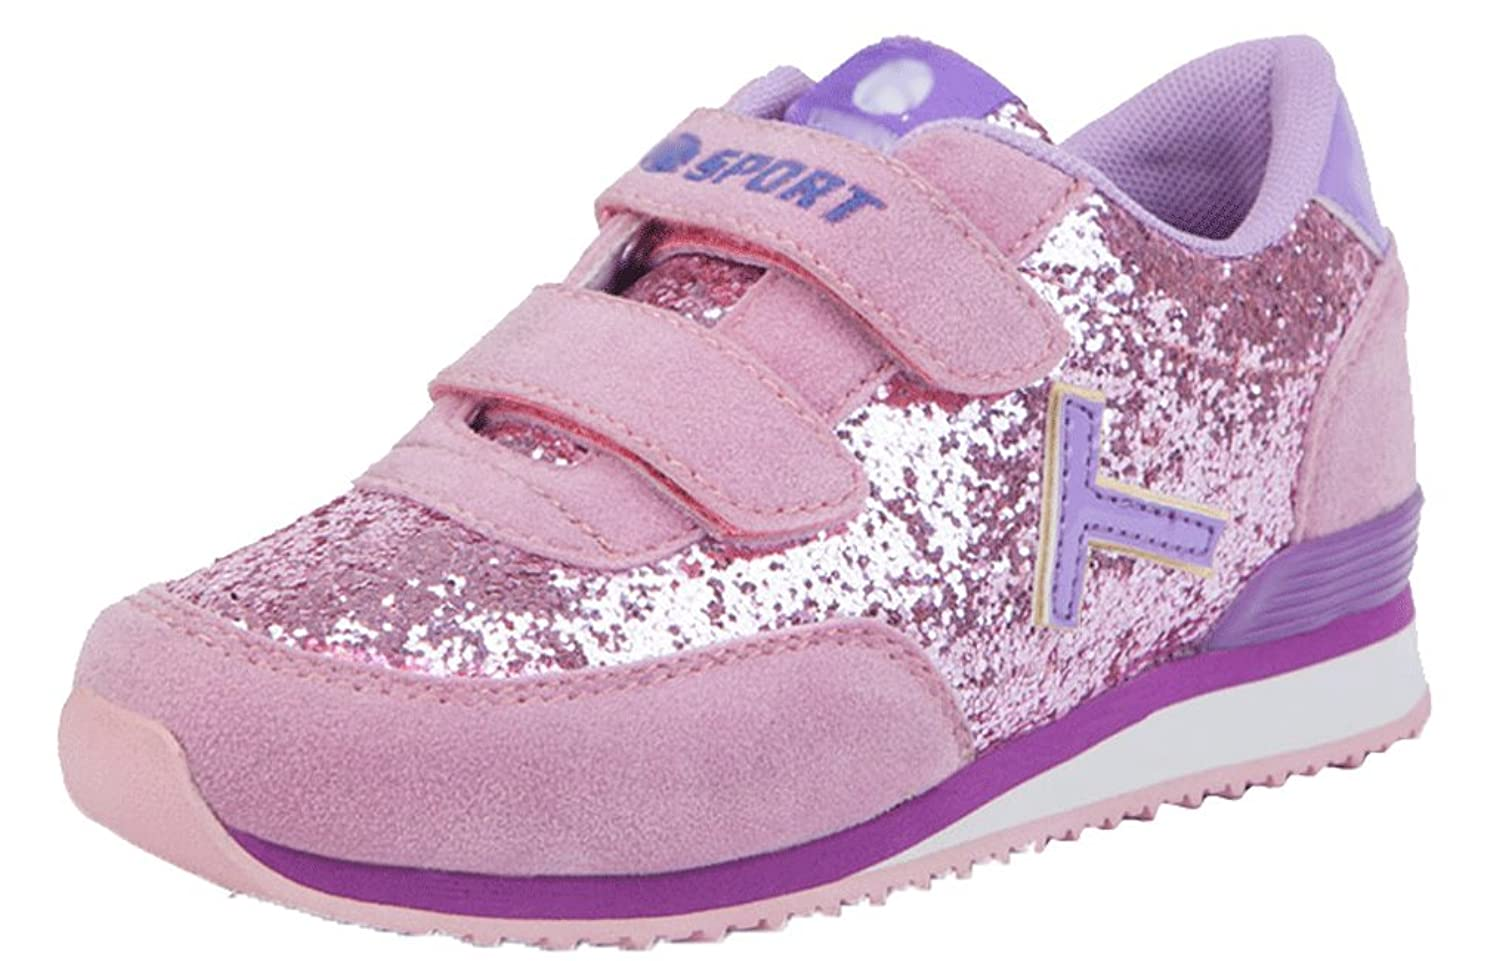 Pointss Girls' La Lovely Flat Leisure Shoes Outdoor Bling Sport Sneakers Sweet Traveling Sport Shoes with Sequins